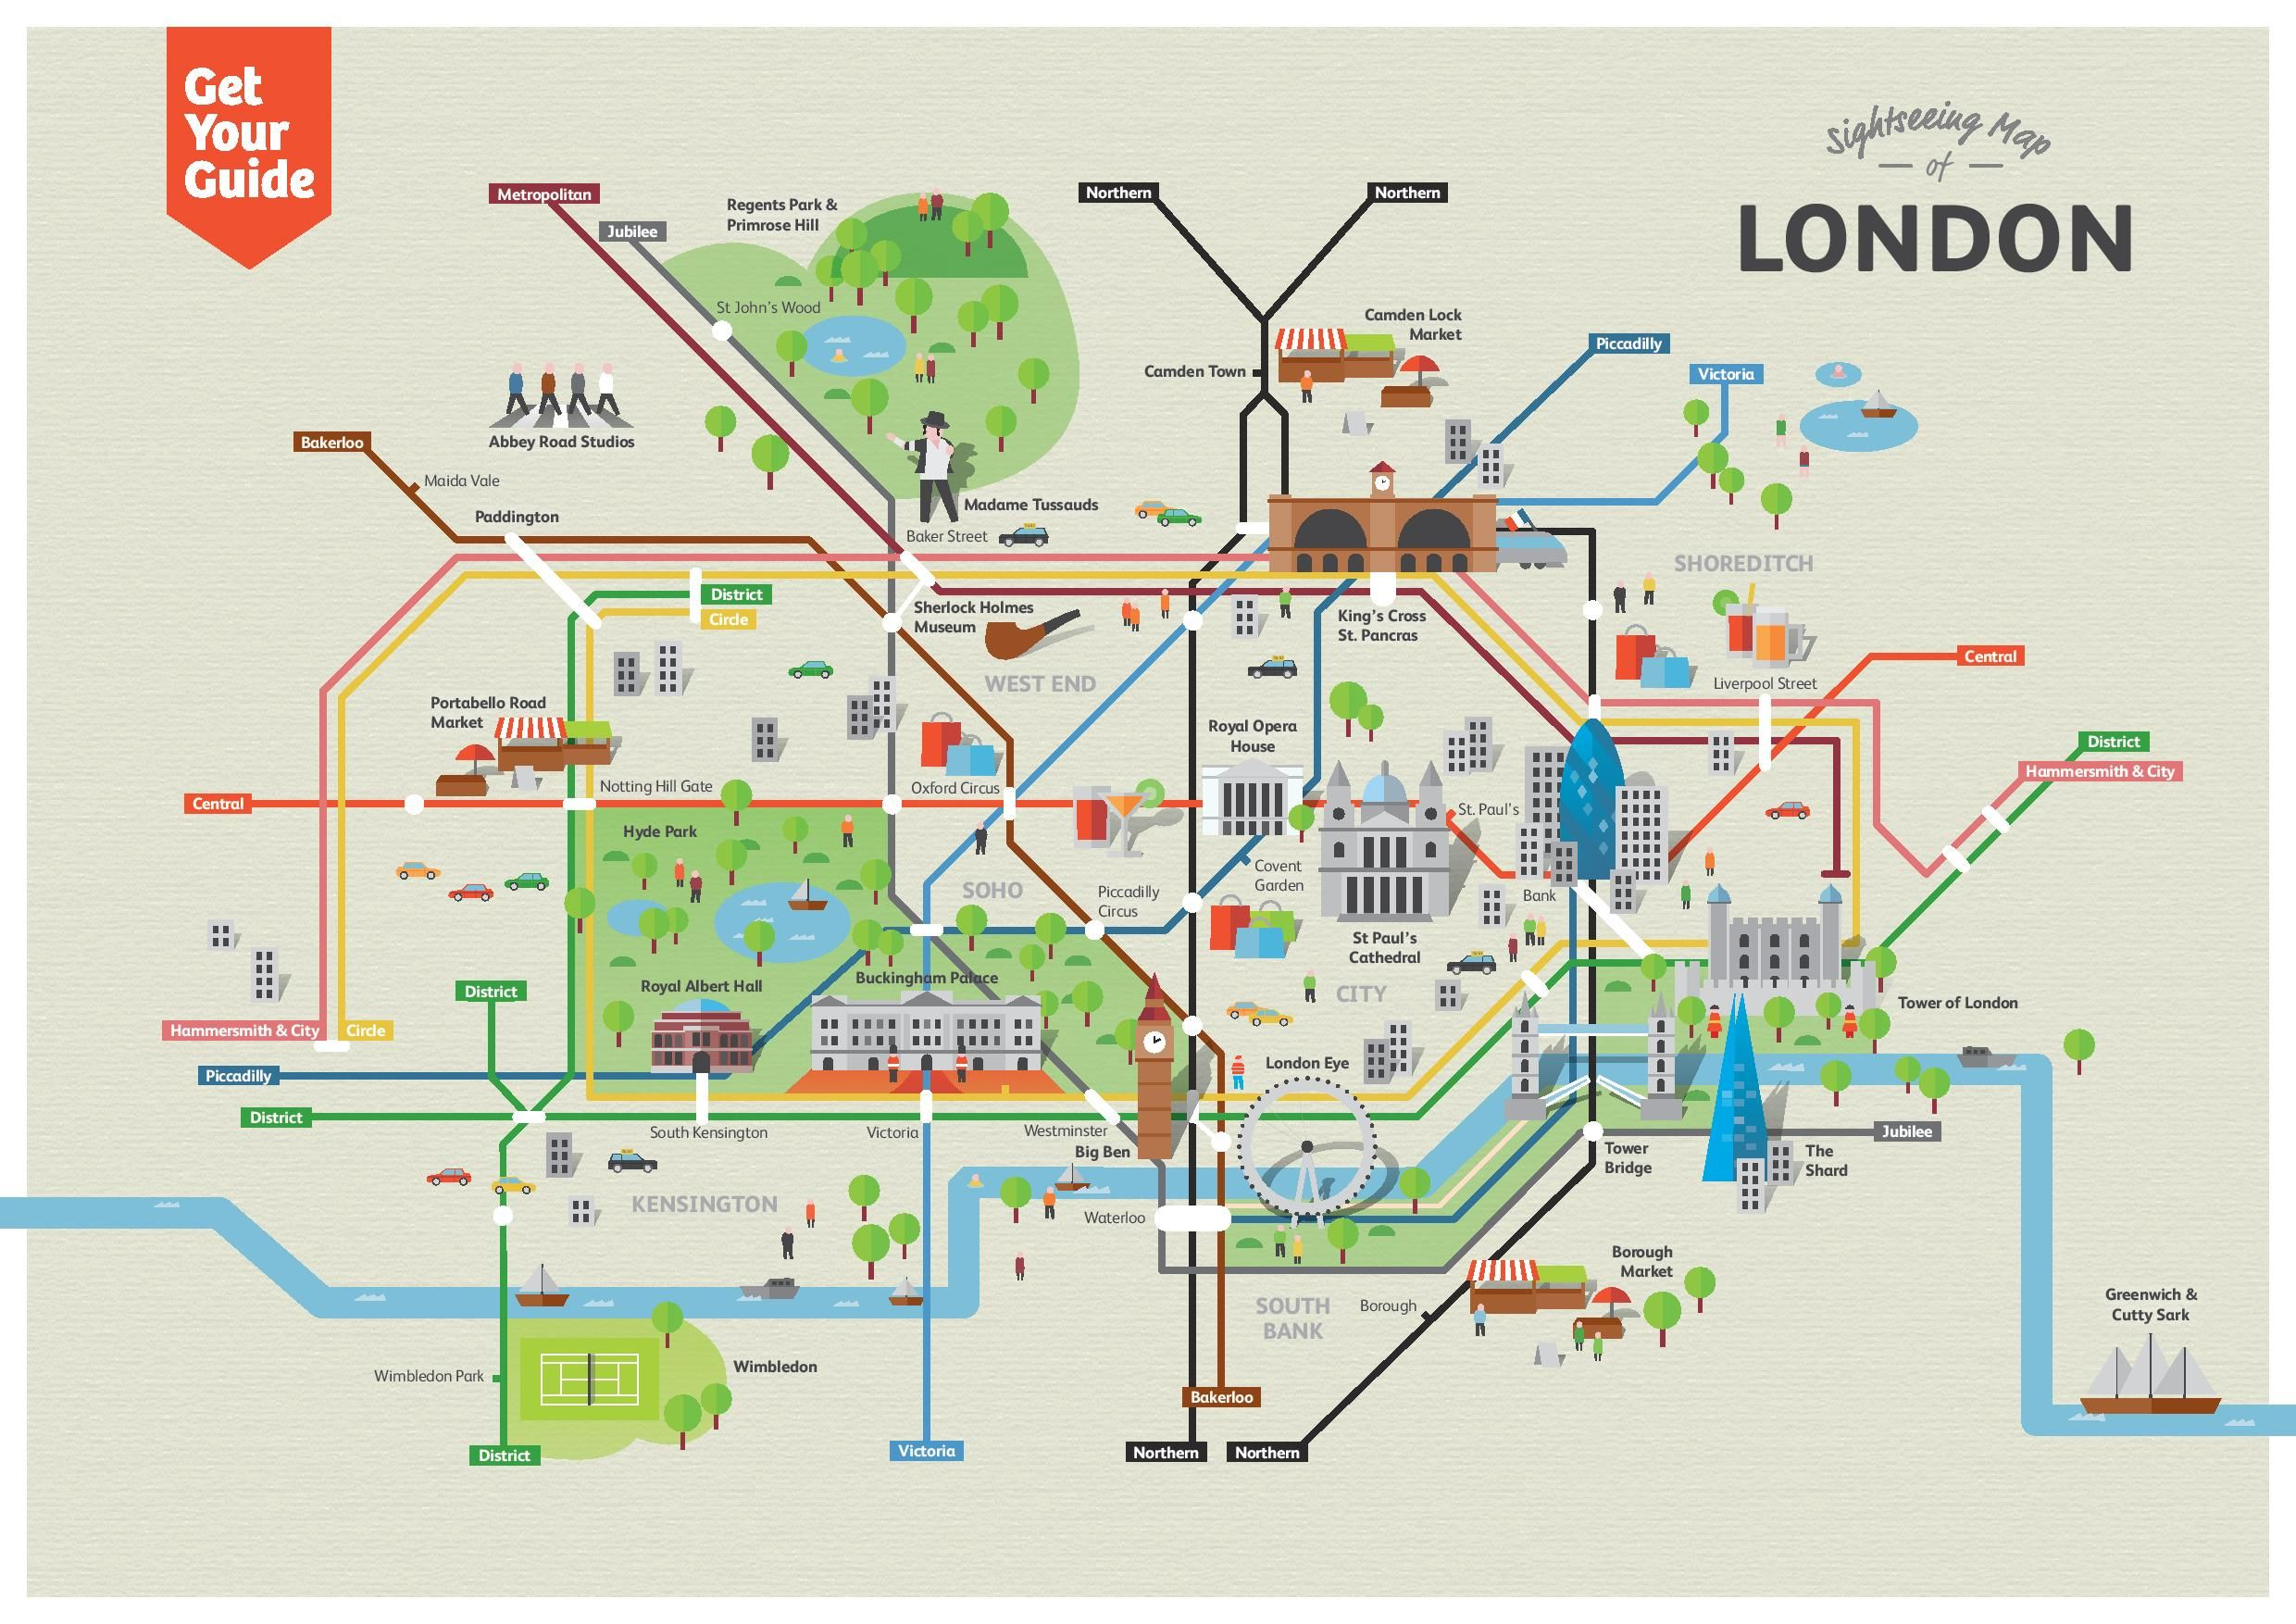 London Map Sightseeing.Sightseeing Map Of London Attractions In 2019 London London